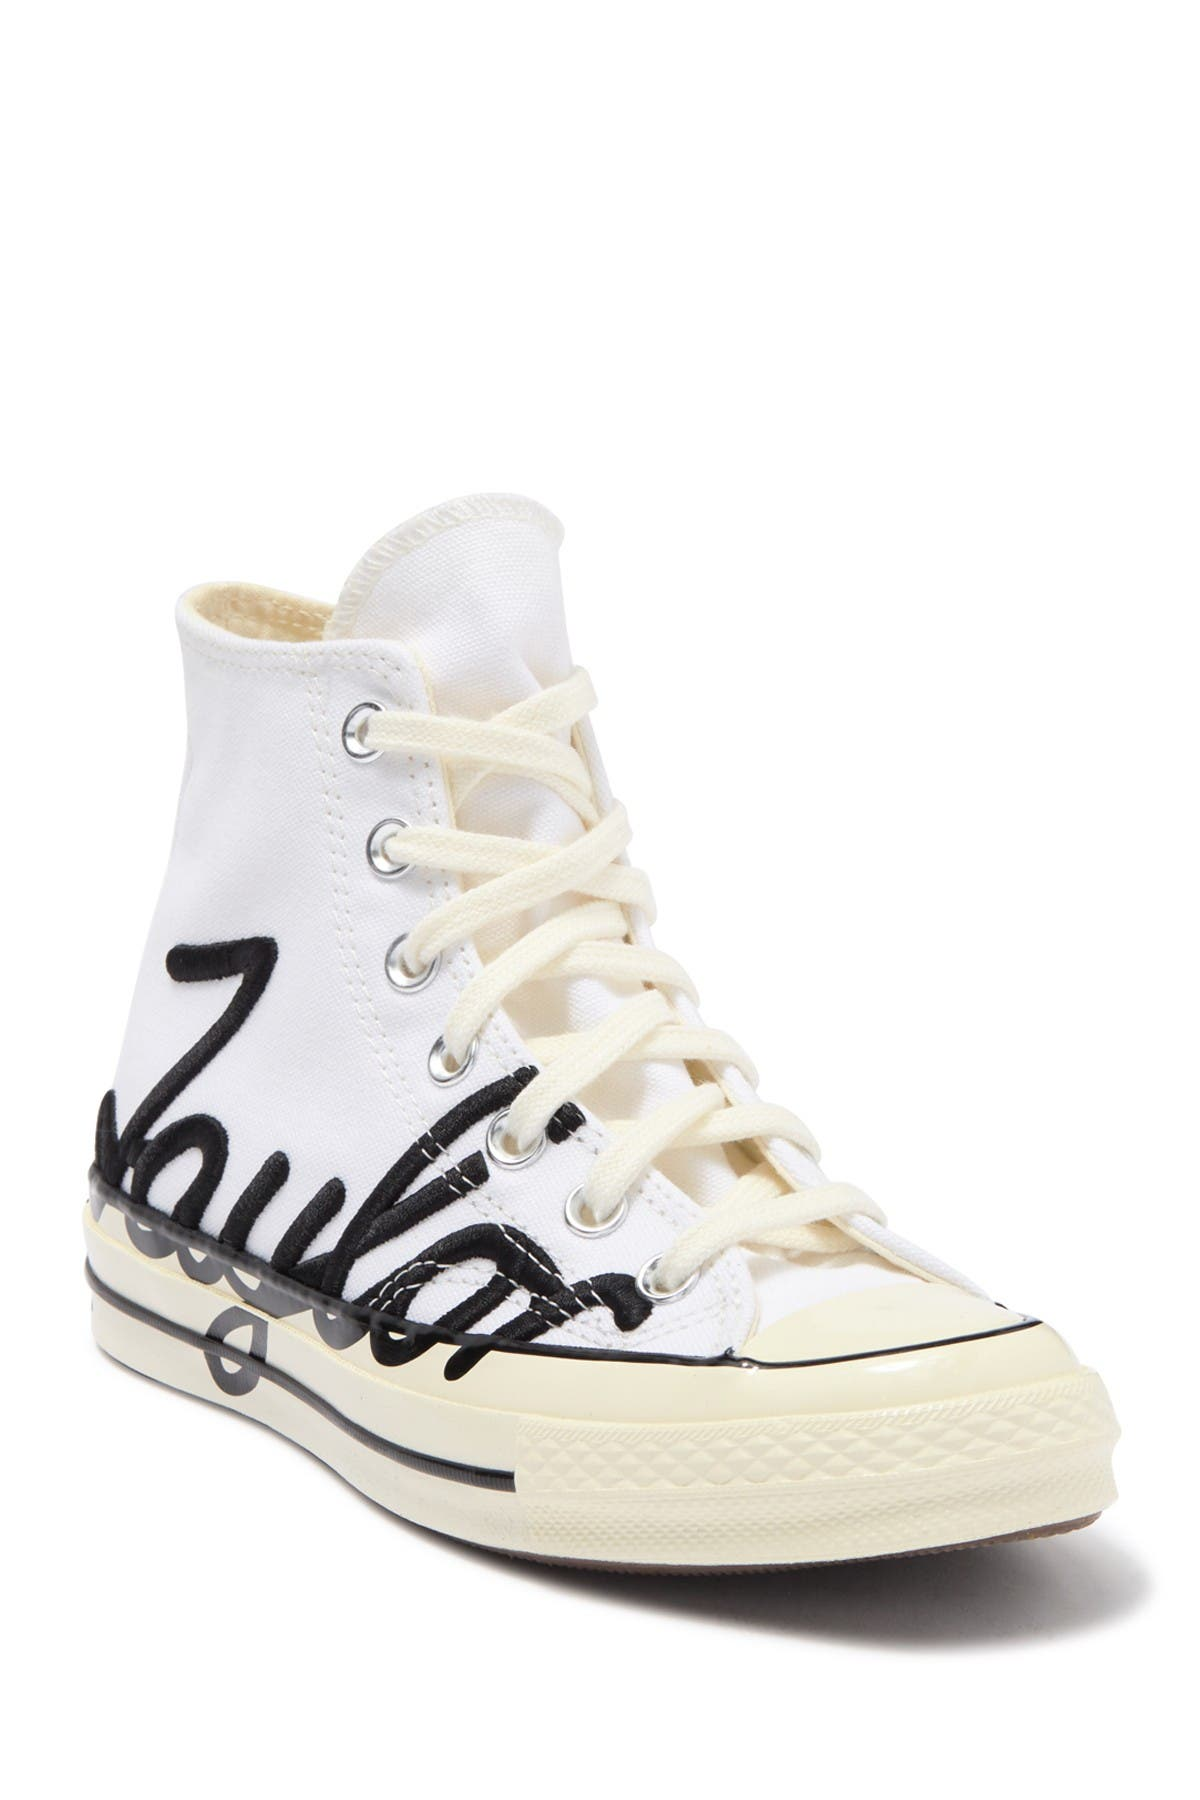 Image of Converse Chuck 70 Vintage High Top Sneaker